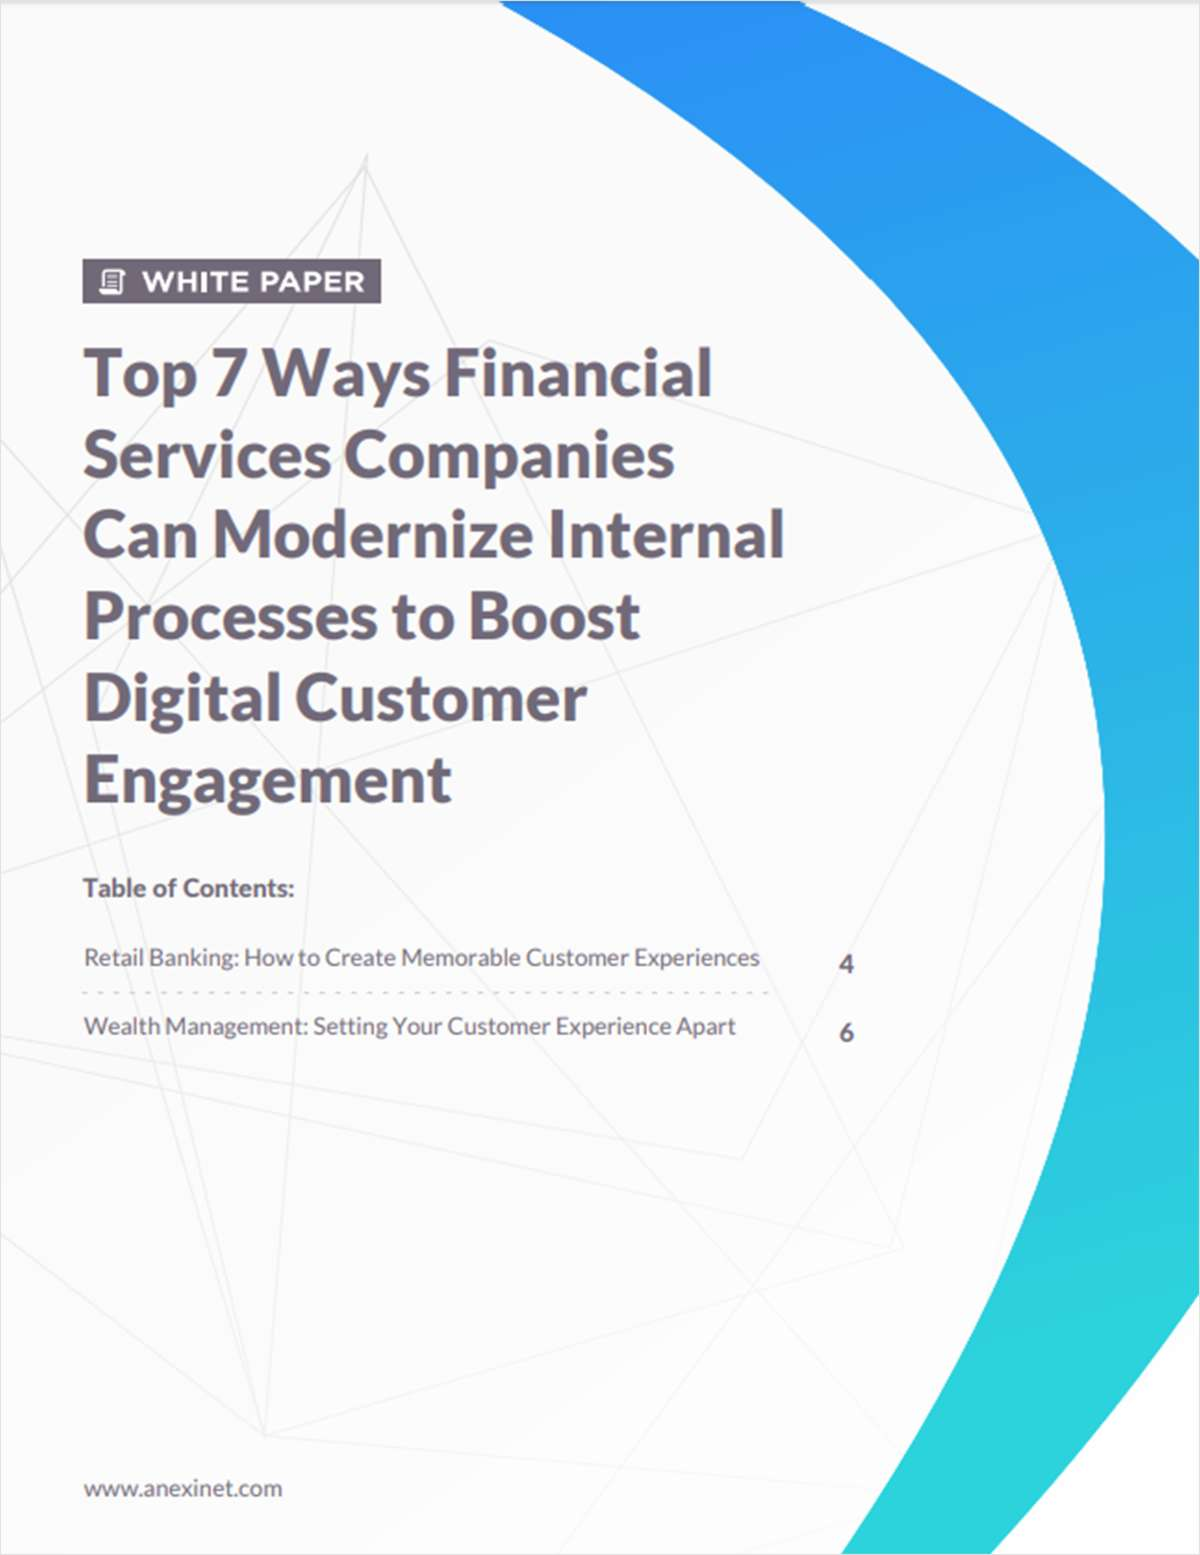 Top Ways Financial Services Companies Can Modernize Internal Processes to Boost Digital Customer Engagement